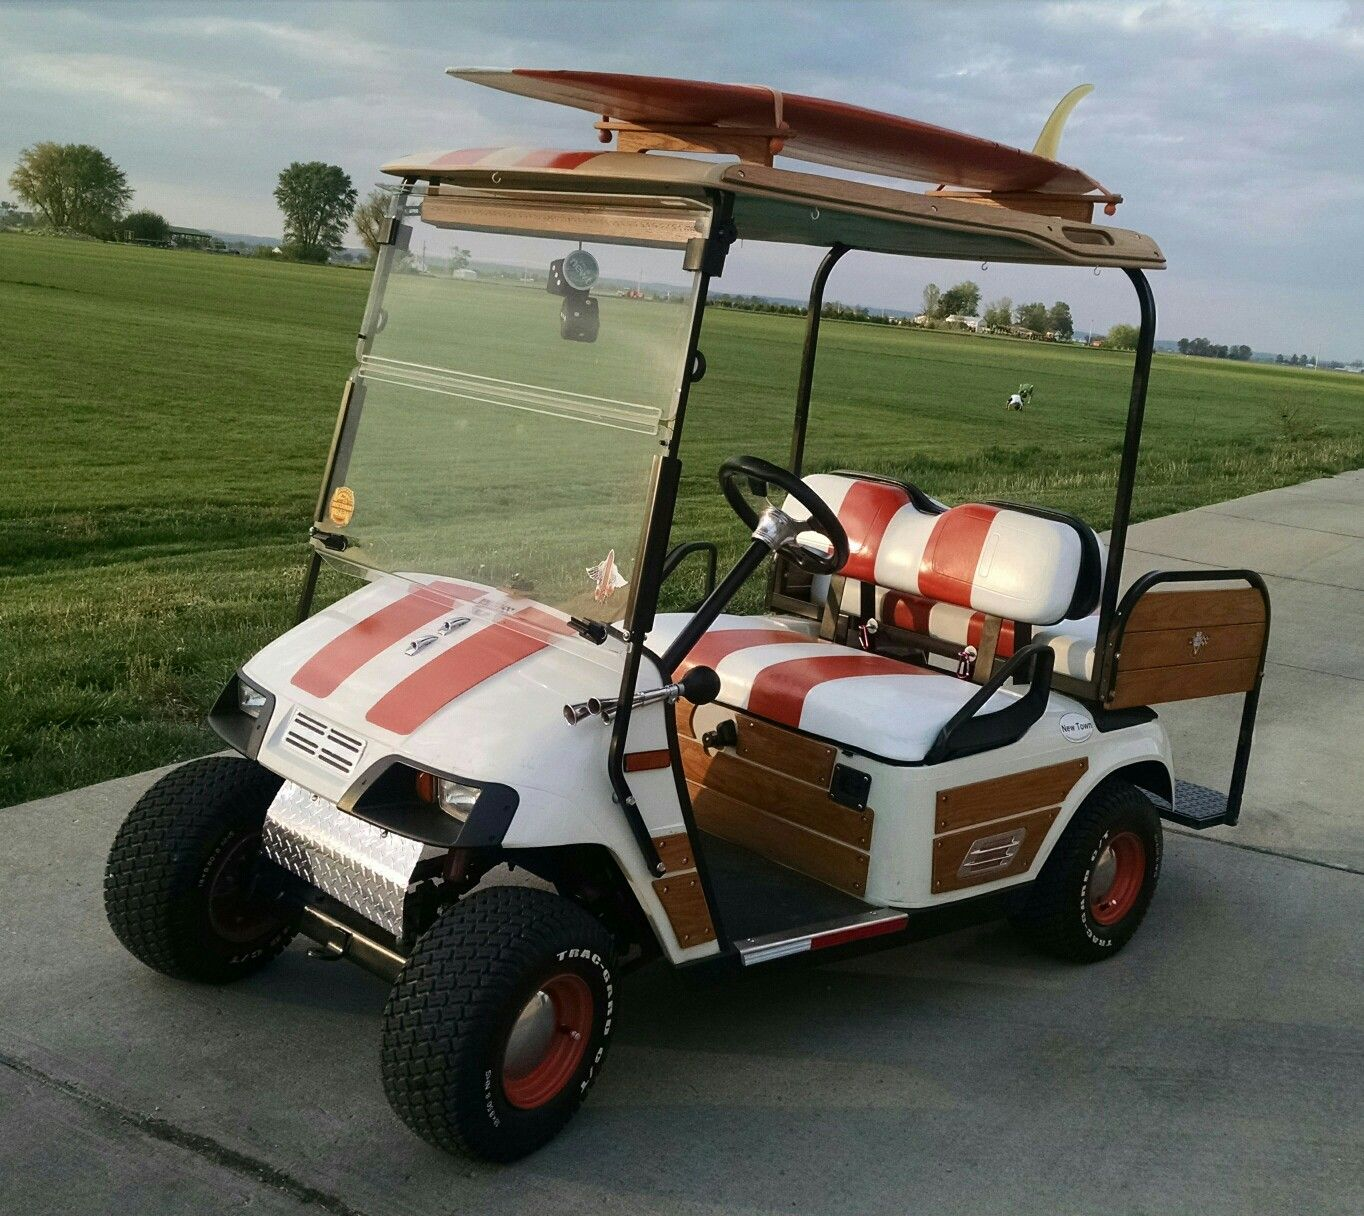 Modified EZGO Woody. Natural Wood panels and trim.crafted by owner on garage wood, tools wood, boat wood, golf rack wood, truck bed wood, construction wood, trailer wood, umbrella wood, wagon wood, rolls royce wood, landscape wood, hot tub wood, car wood, eagle wood, kayak wood,